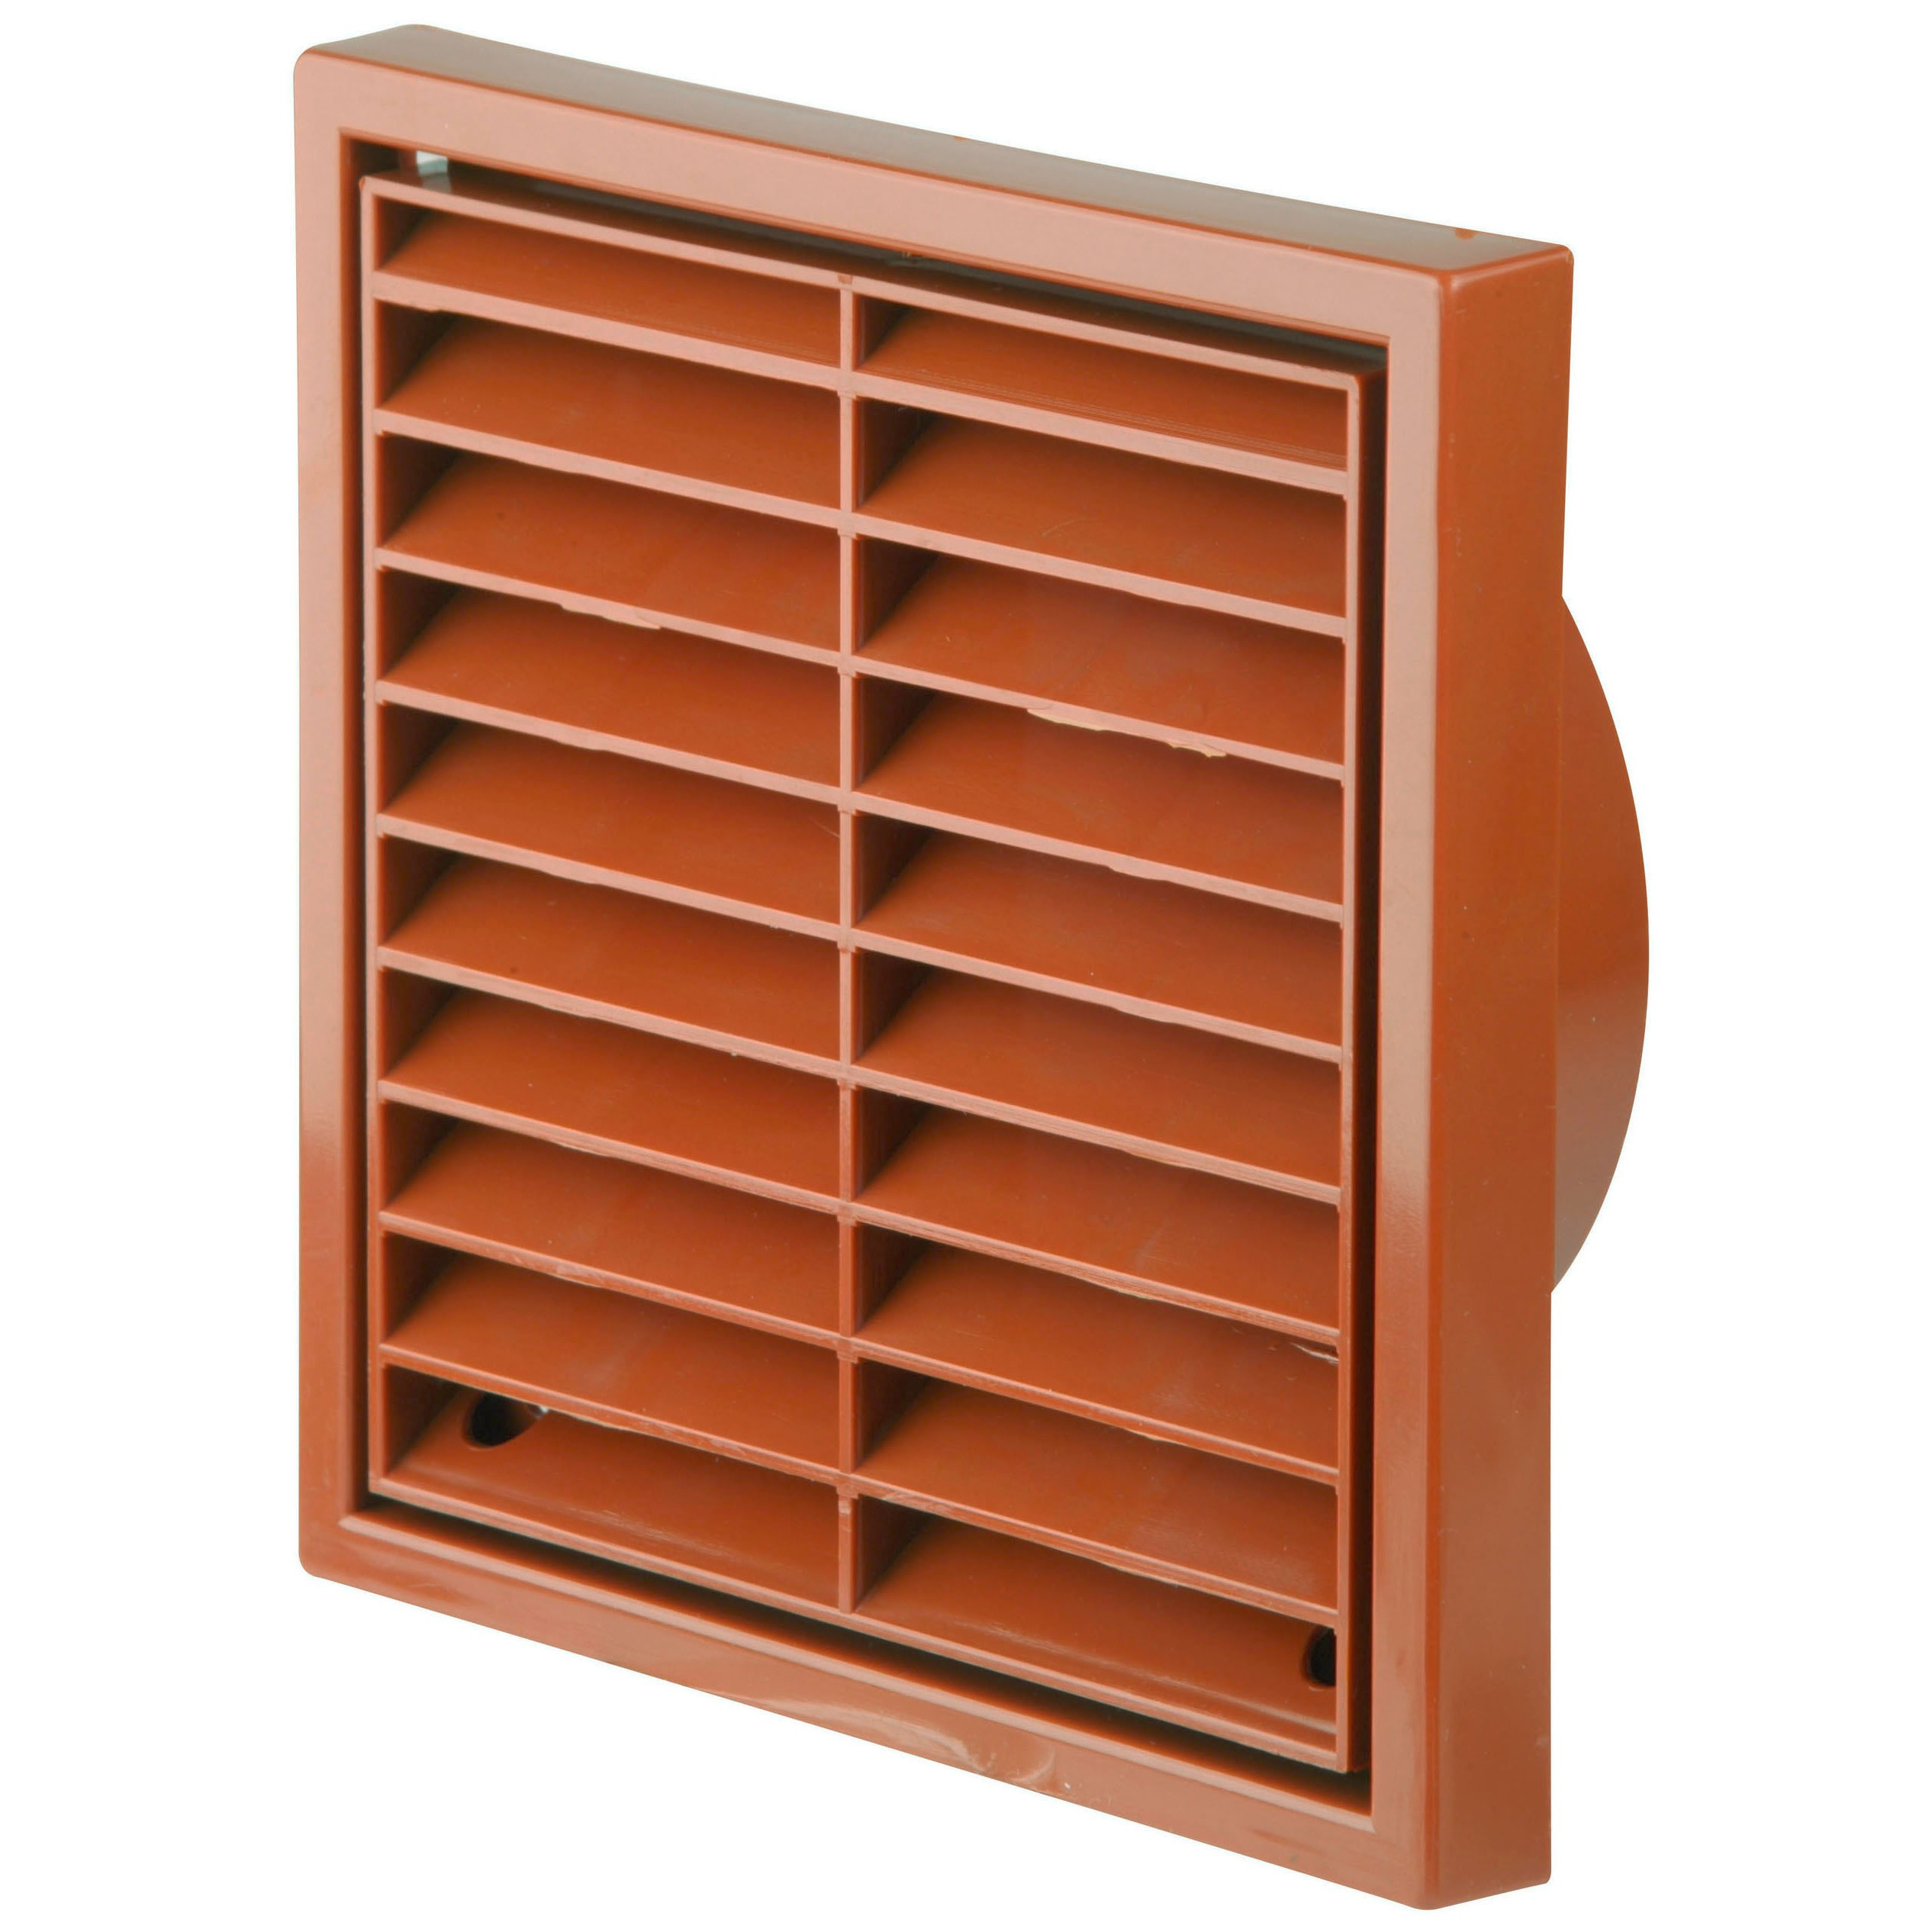 Manrose Round Ducting Pipe Fixed Grille Vent Outlet - Terracotta, 100mm